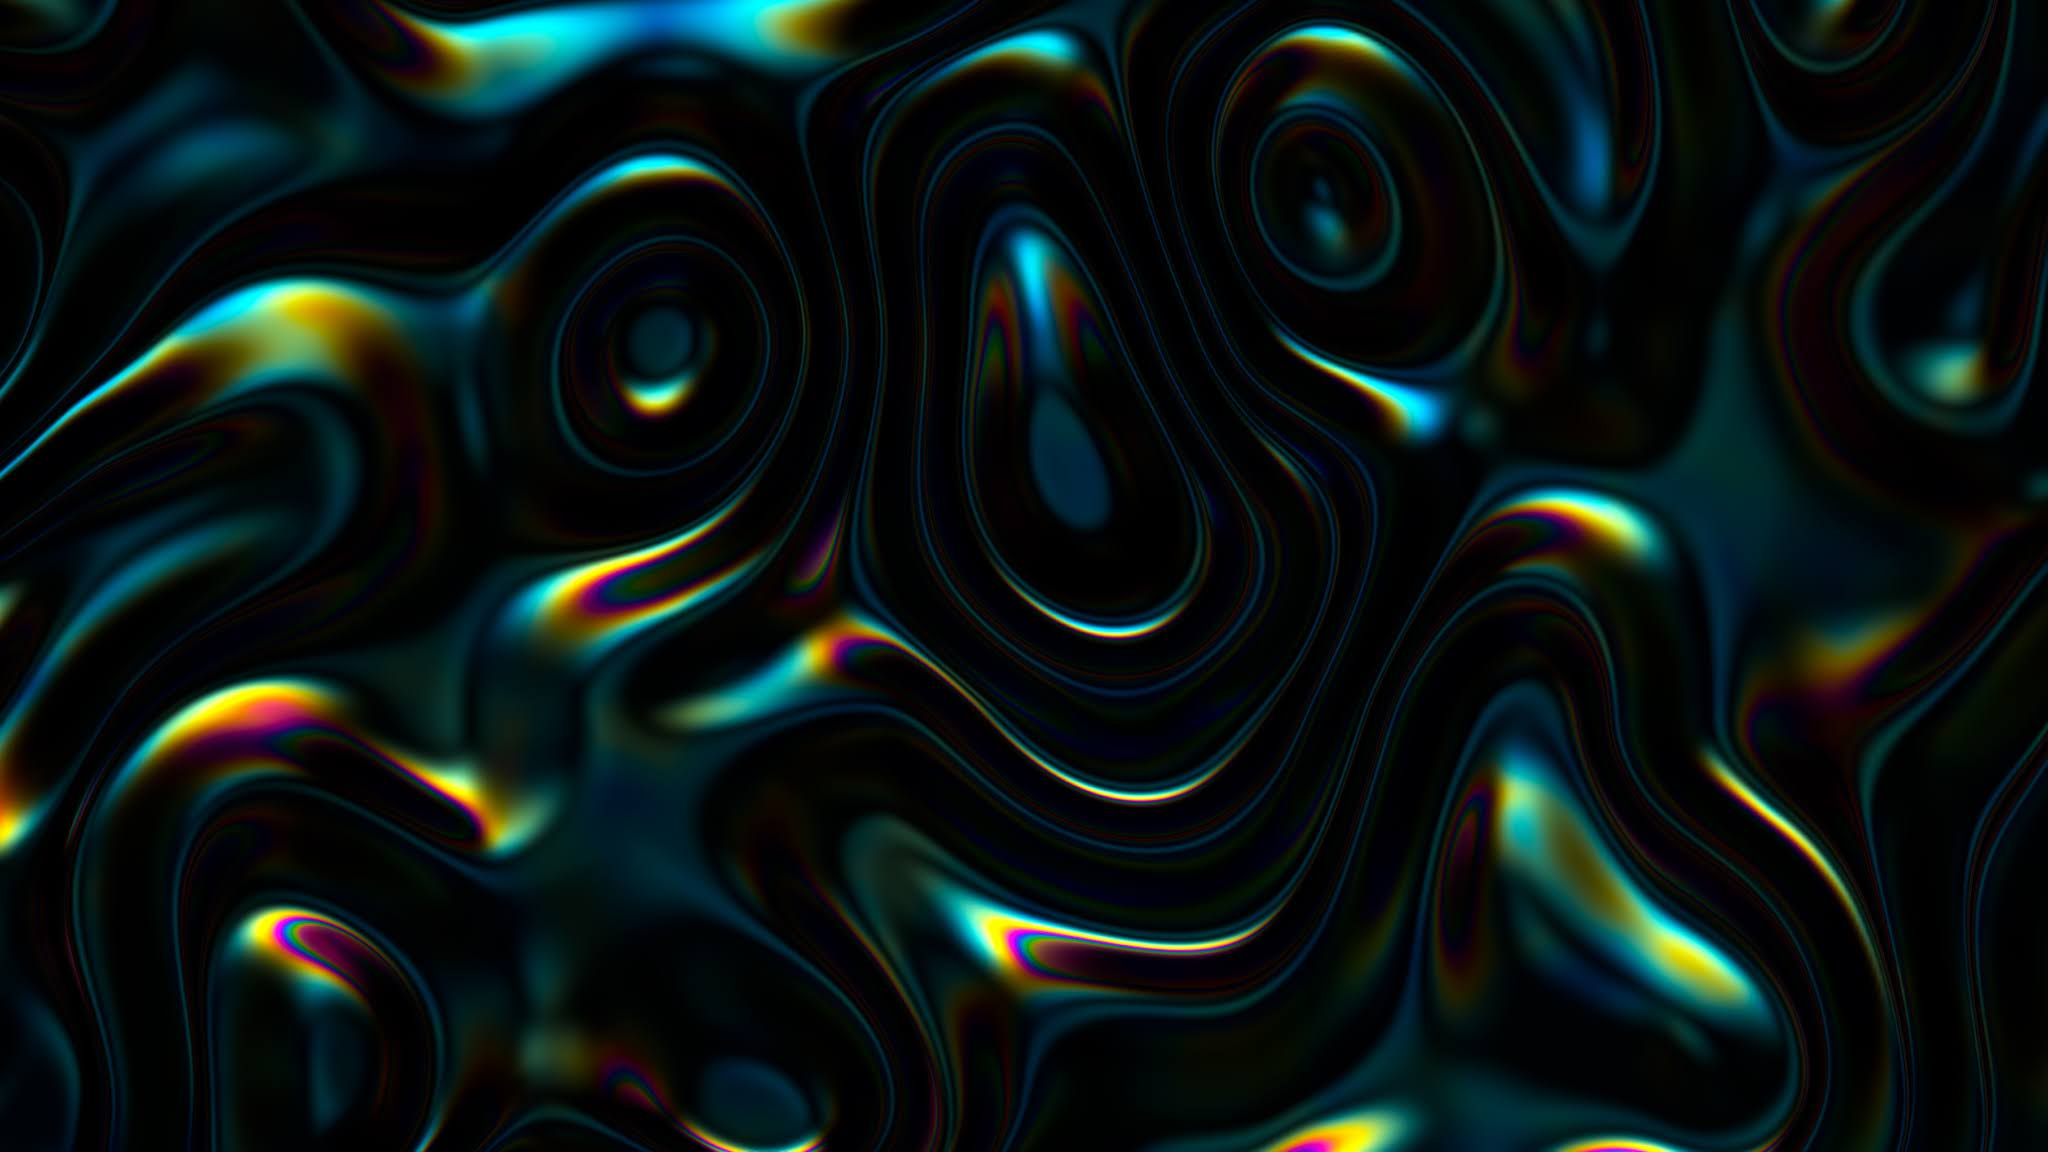 3d abstract iridescent wavy background. vibrant liquid reflection surface. neon holographic fluid distortion Free Photo